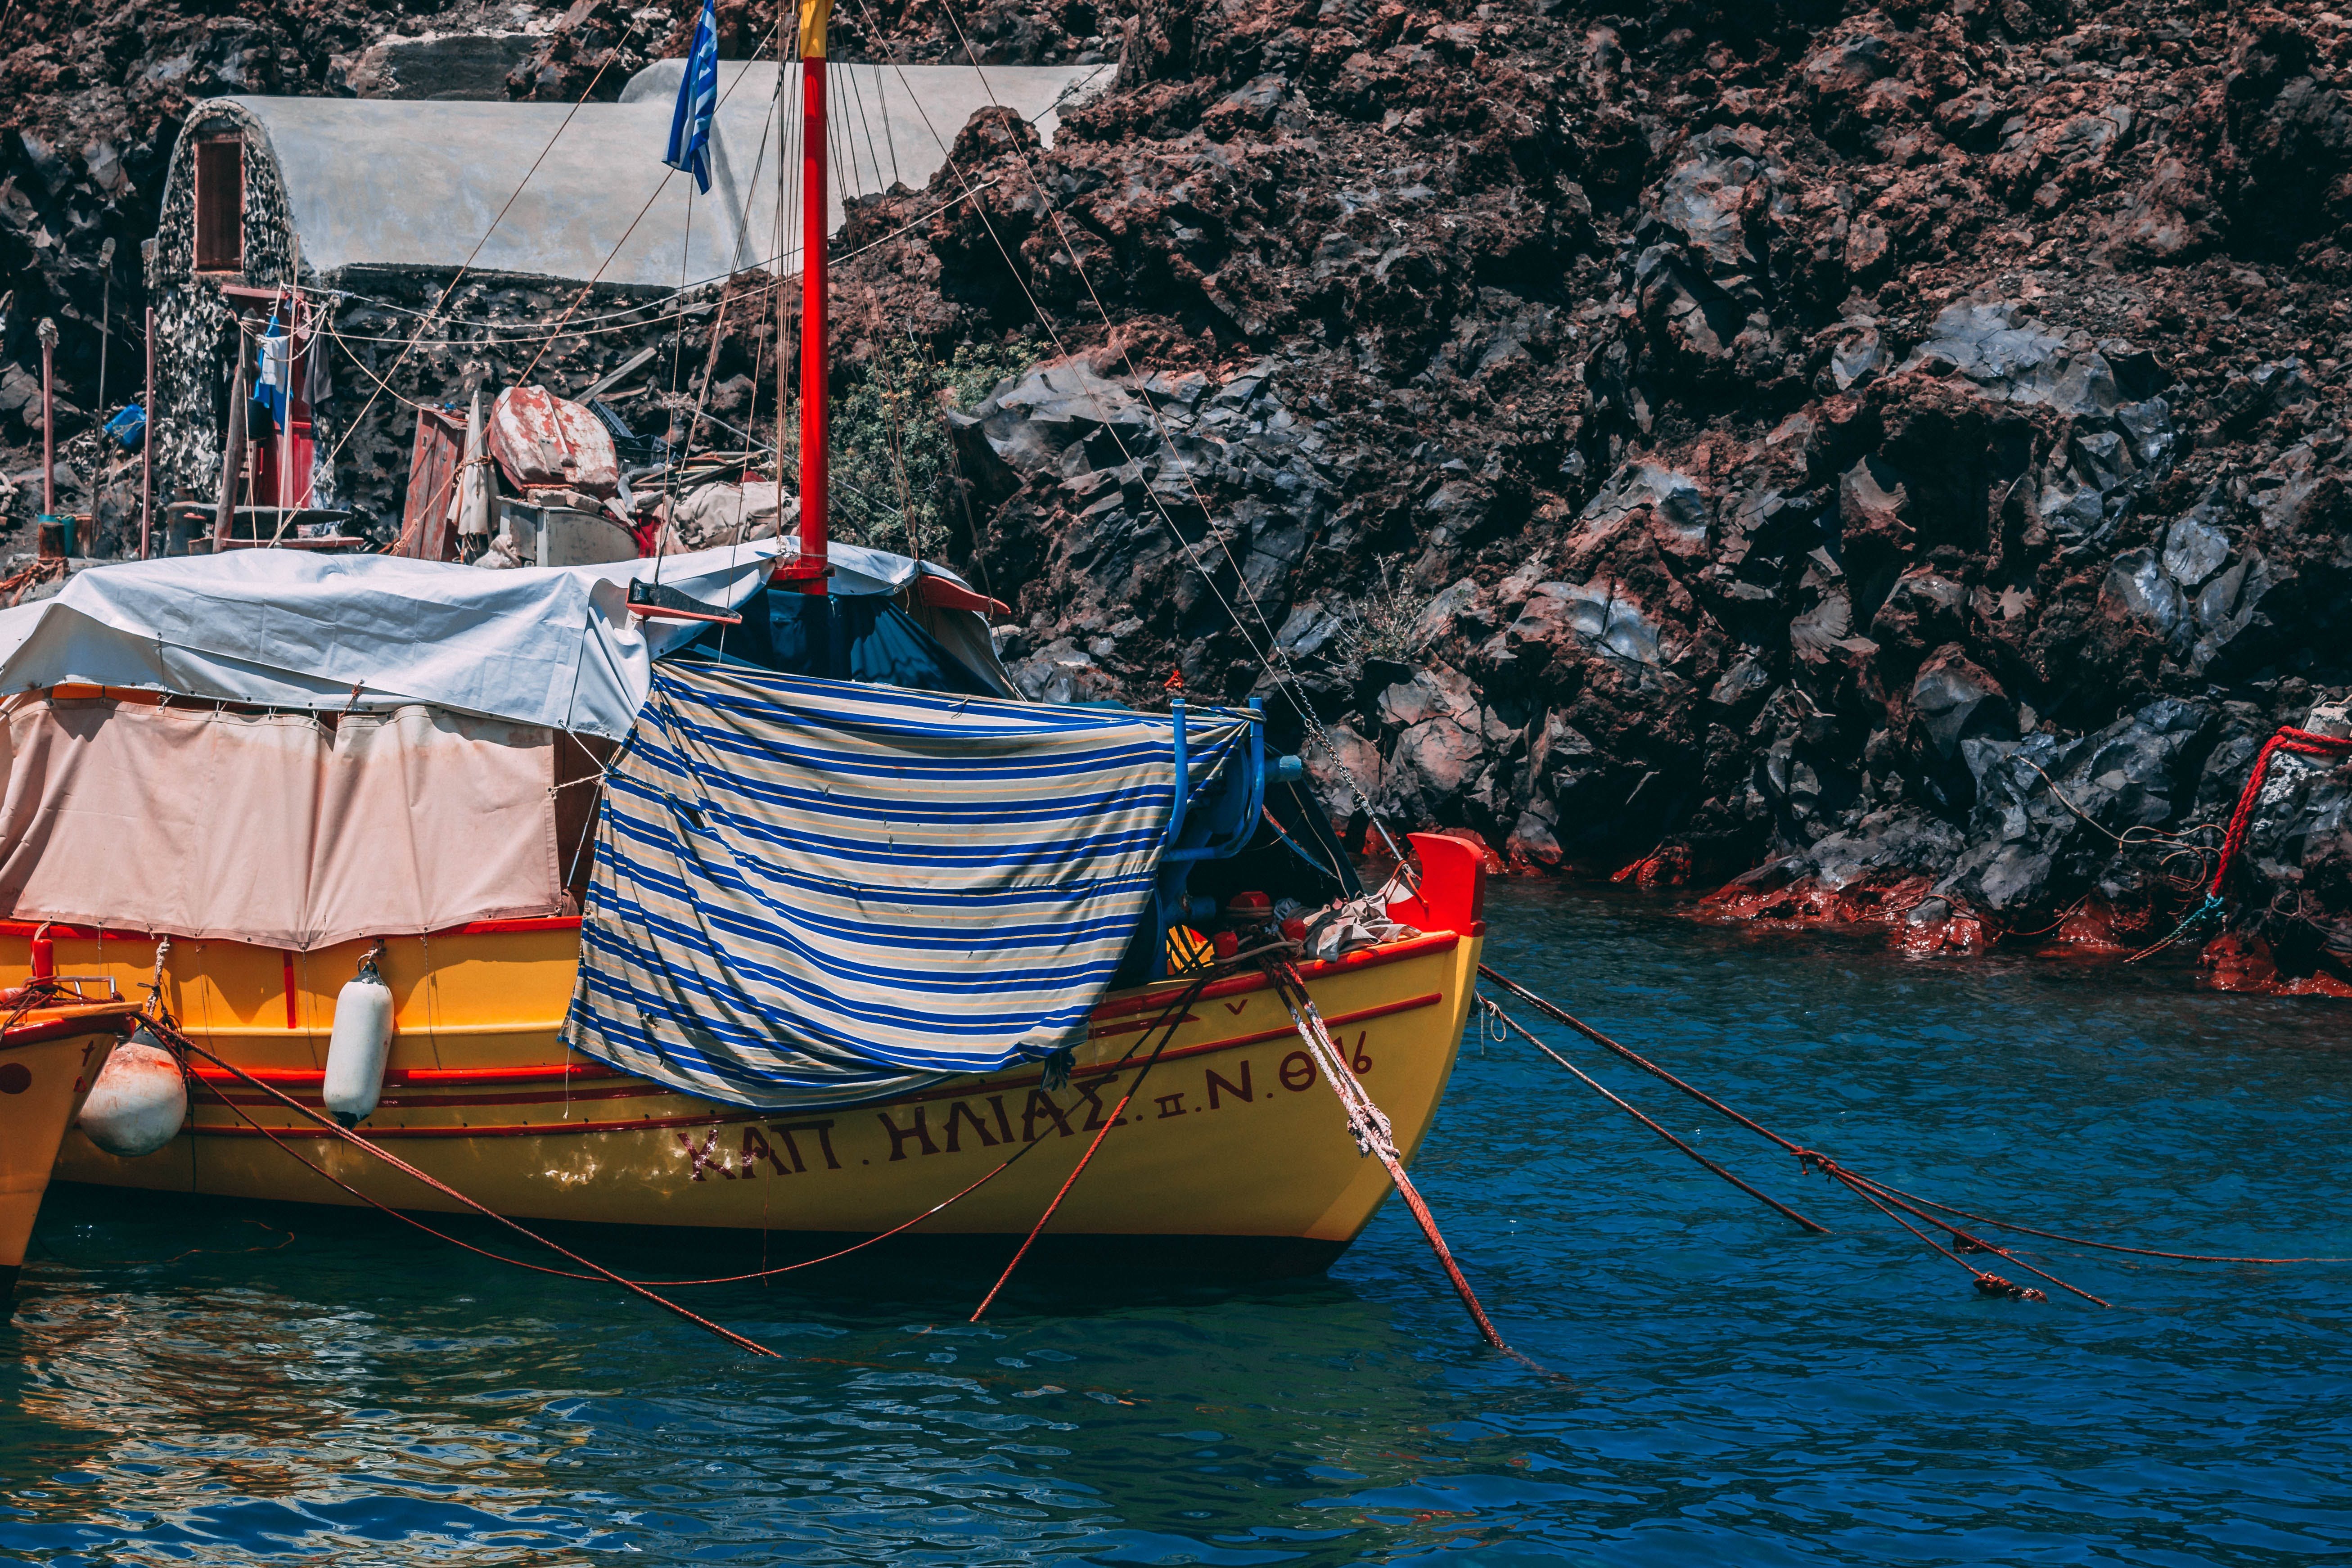 Yellow and Red Boat on Body of Water